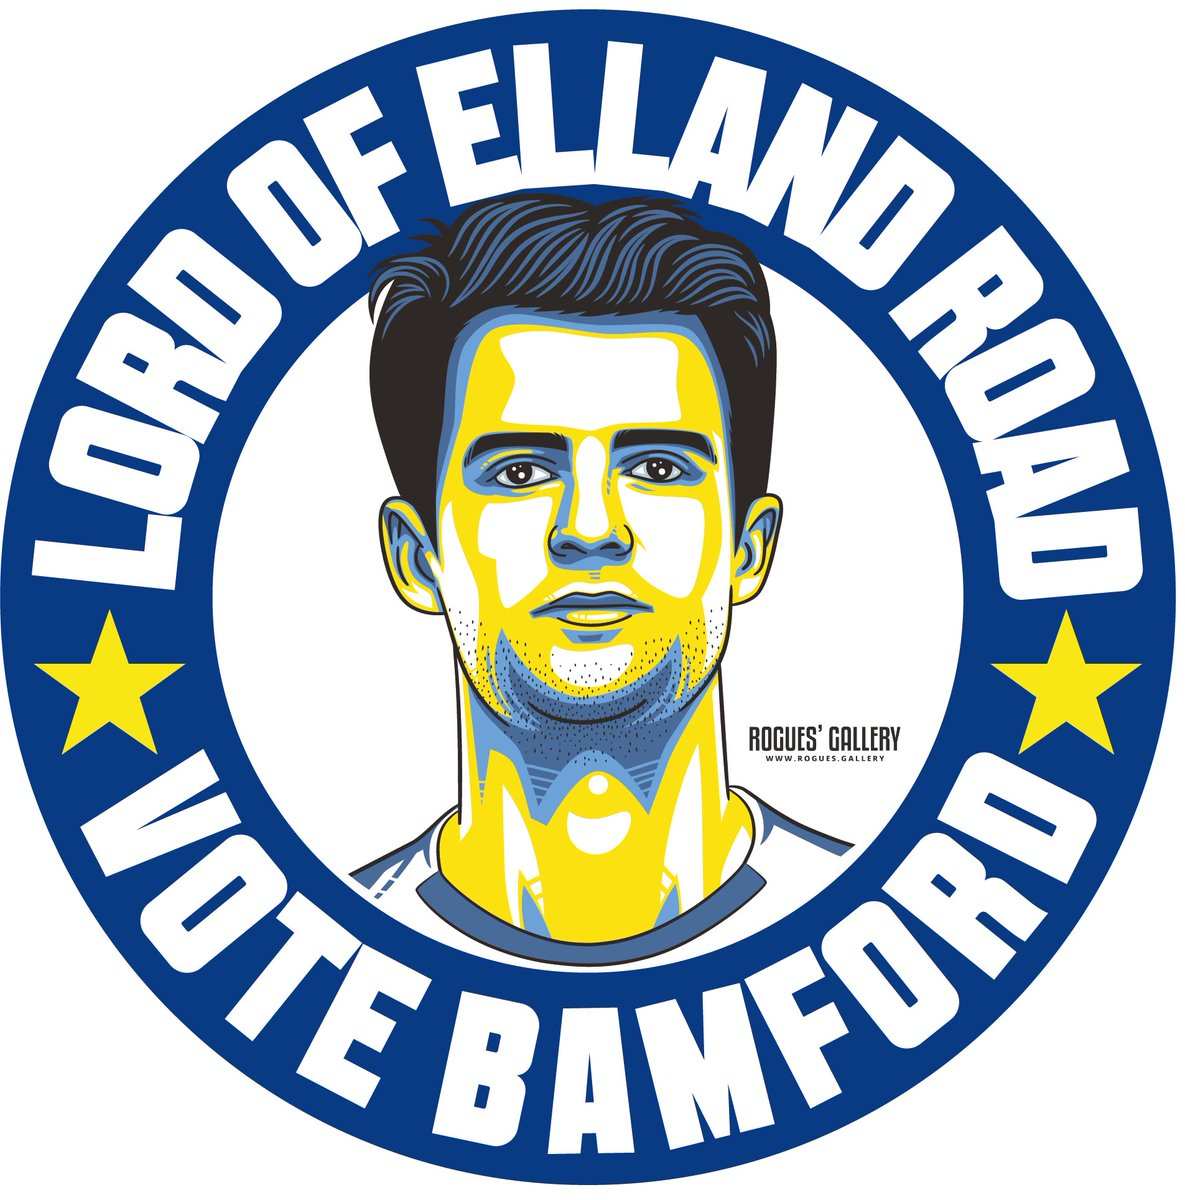 The latest of our #lufc #GetBehindTheLads designs features none other than the Lord of Elland Road @Patrick_Bamford - been waiting to release this for a while but after his brace last night... 🔥👌🏻 Campaign #stickers & beer🍺 mats from rogues.gallery now! 👀 #lufc #Leeds